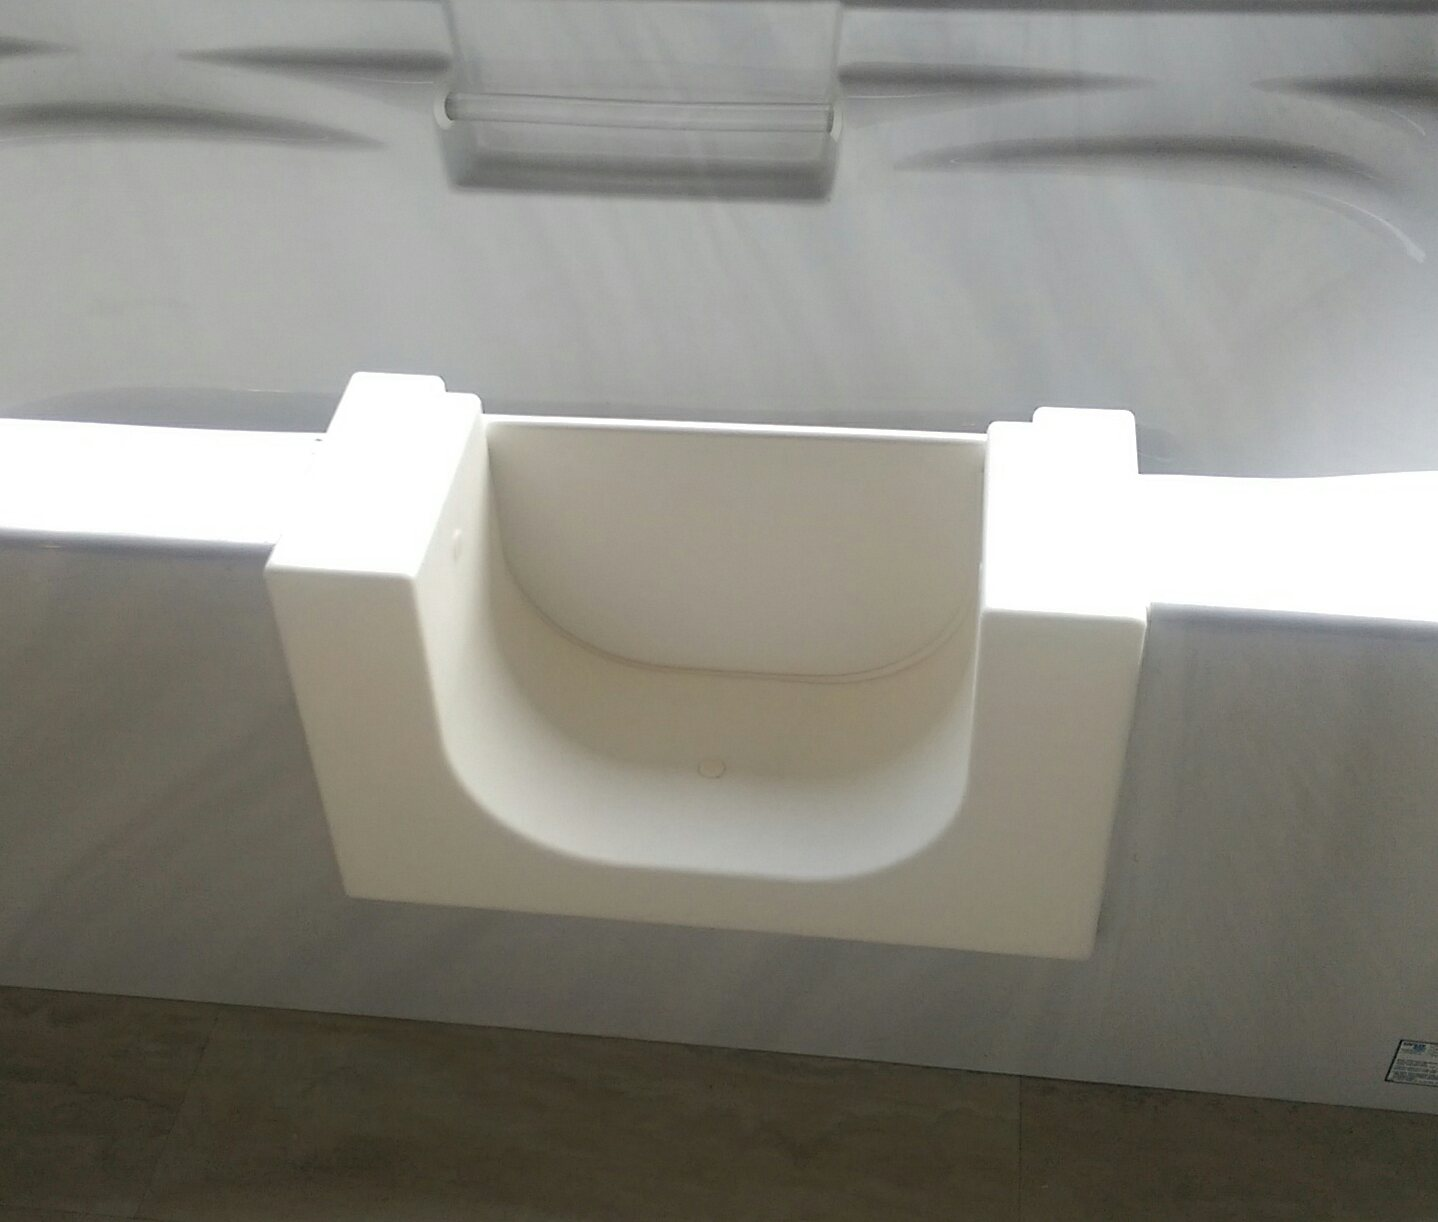 walk-in bathtub with door closed, installed